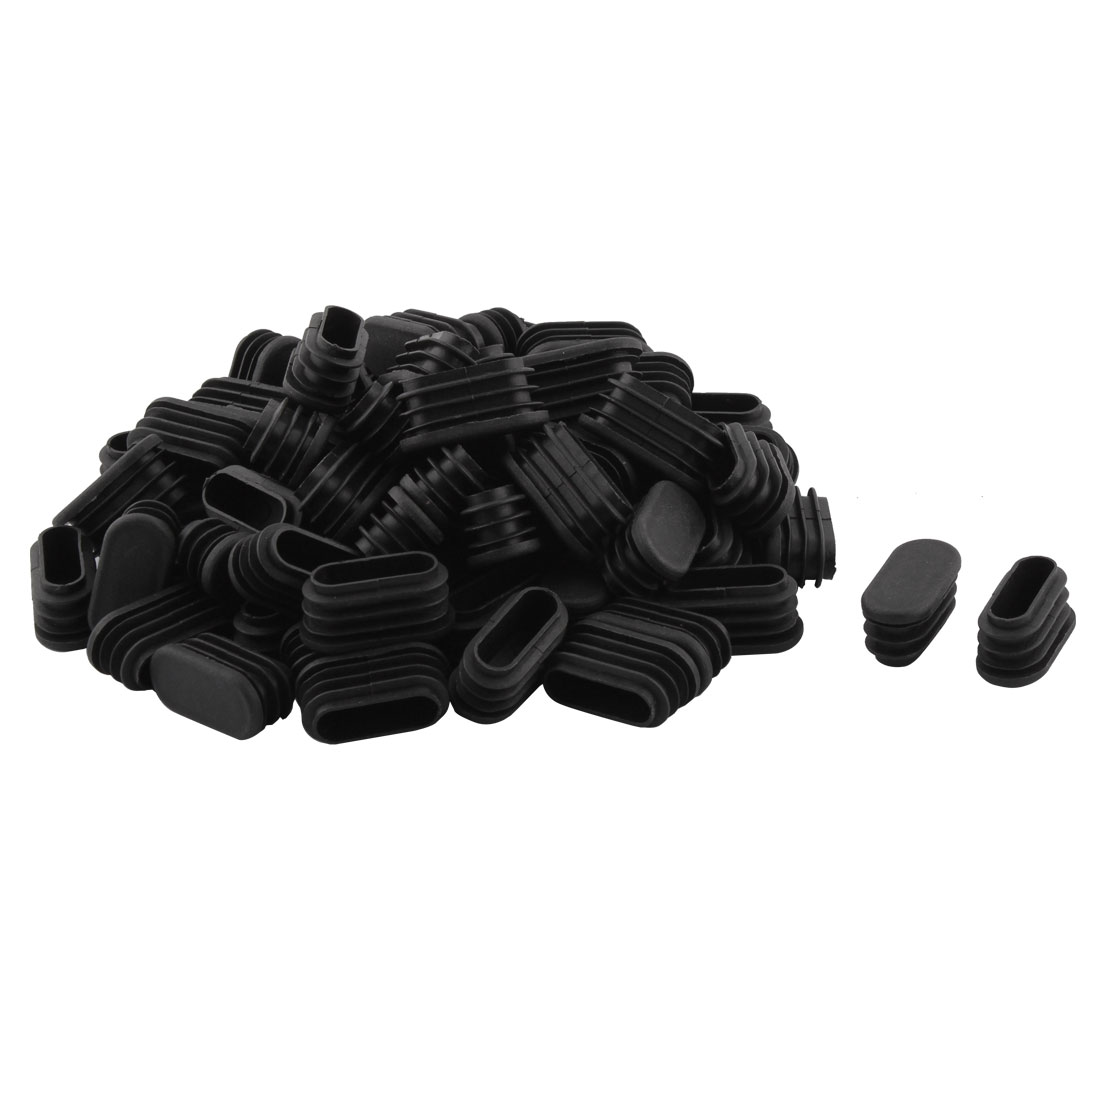 Household Plastic Rectangular Shaped Chair Leg Tube Pipe Insert Black 1.6 x 3.4cm 70 PCS